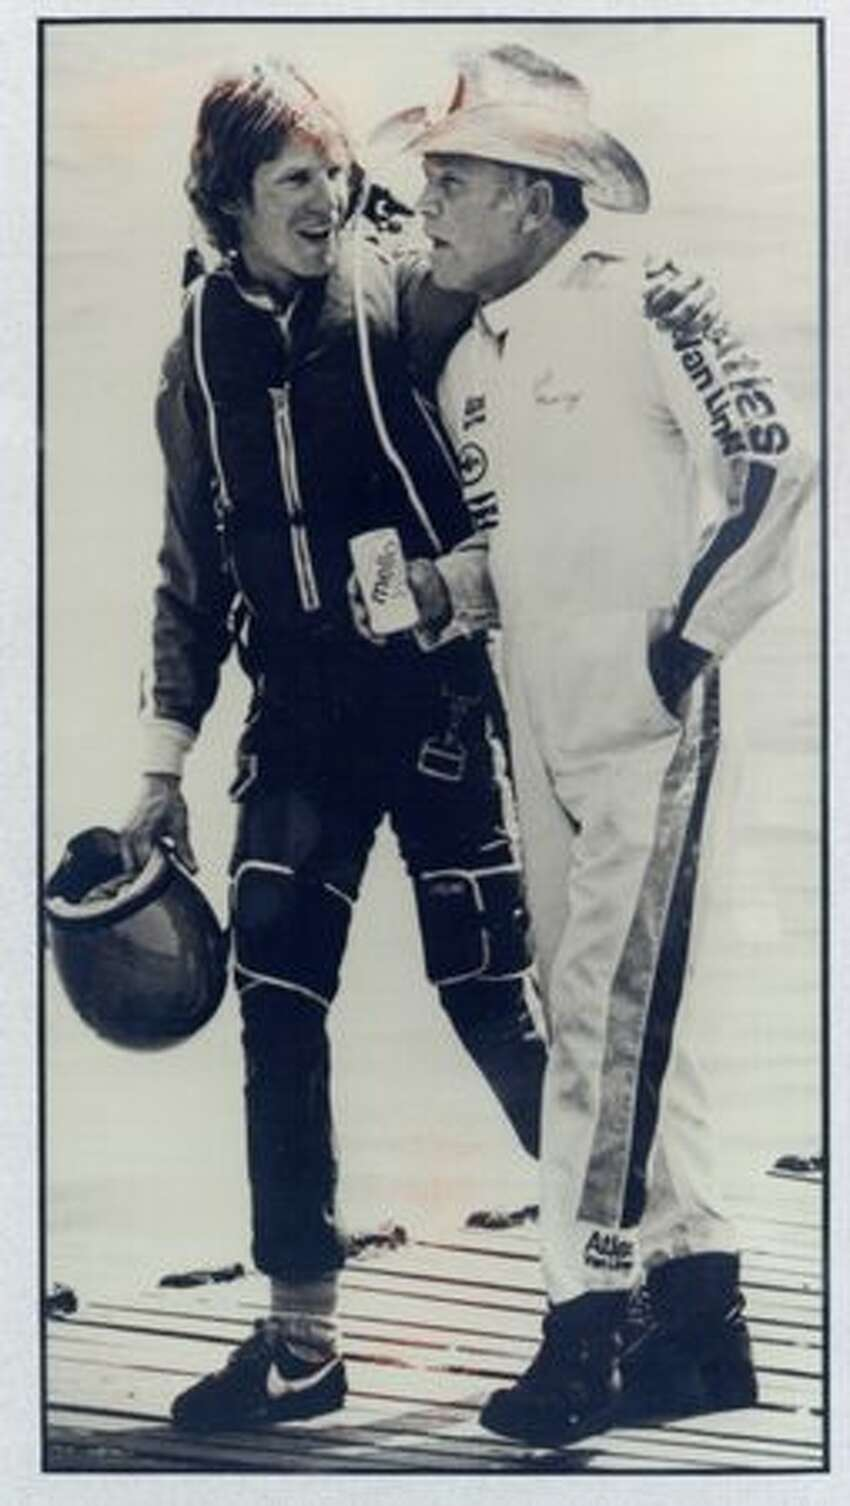 Chip Hanauer, left, and the late Bill Muncey were hydro racing's top drivers until Muncey was killed and Haneaur retired.